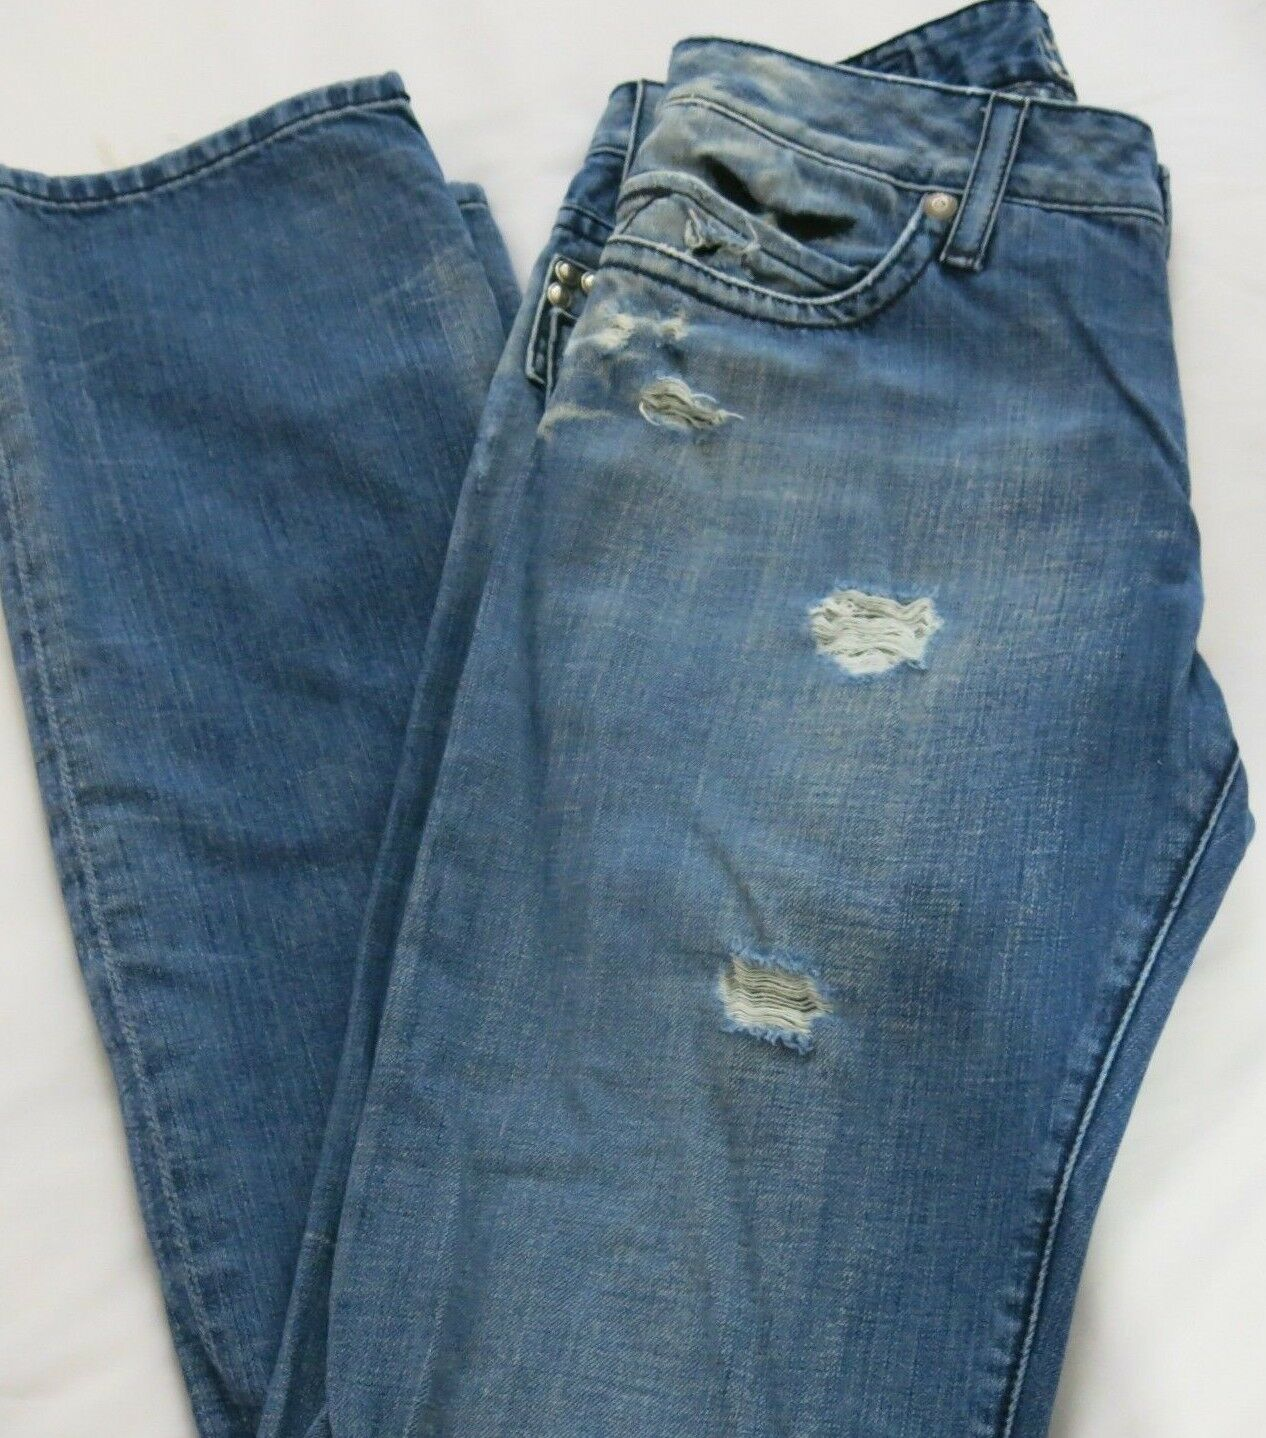 Men's ROBIN JEANS bluee with Studs SZ 31